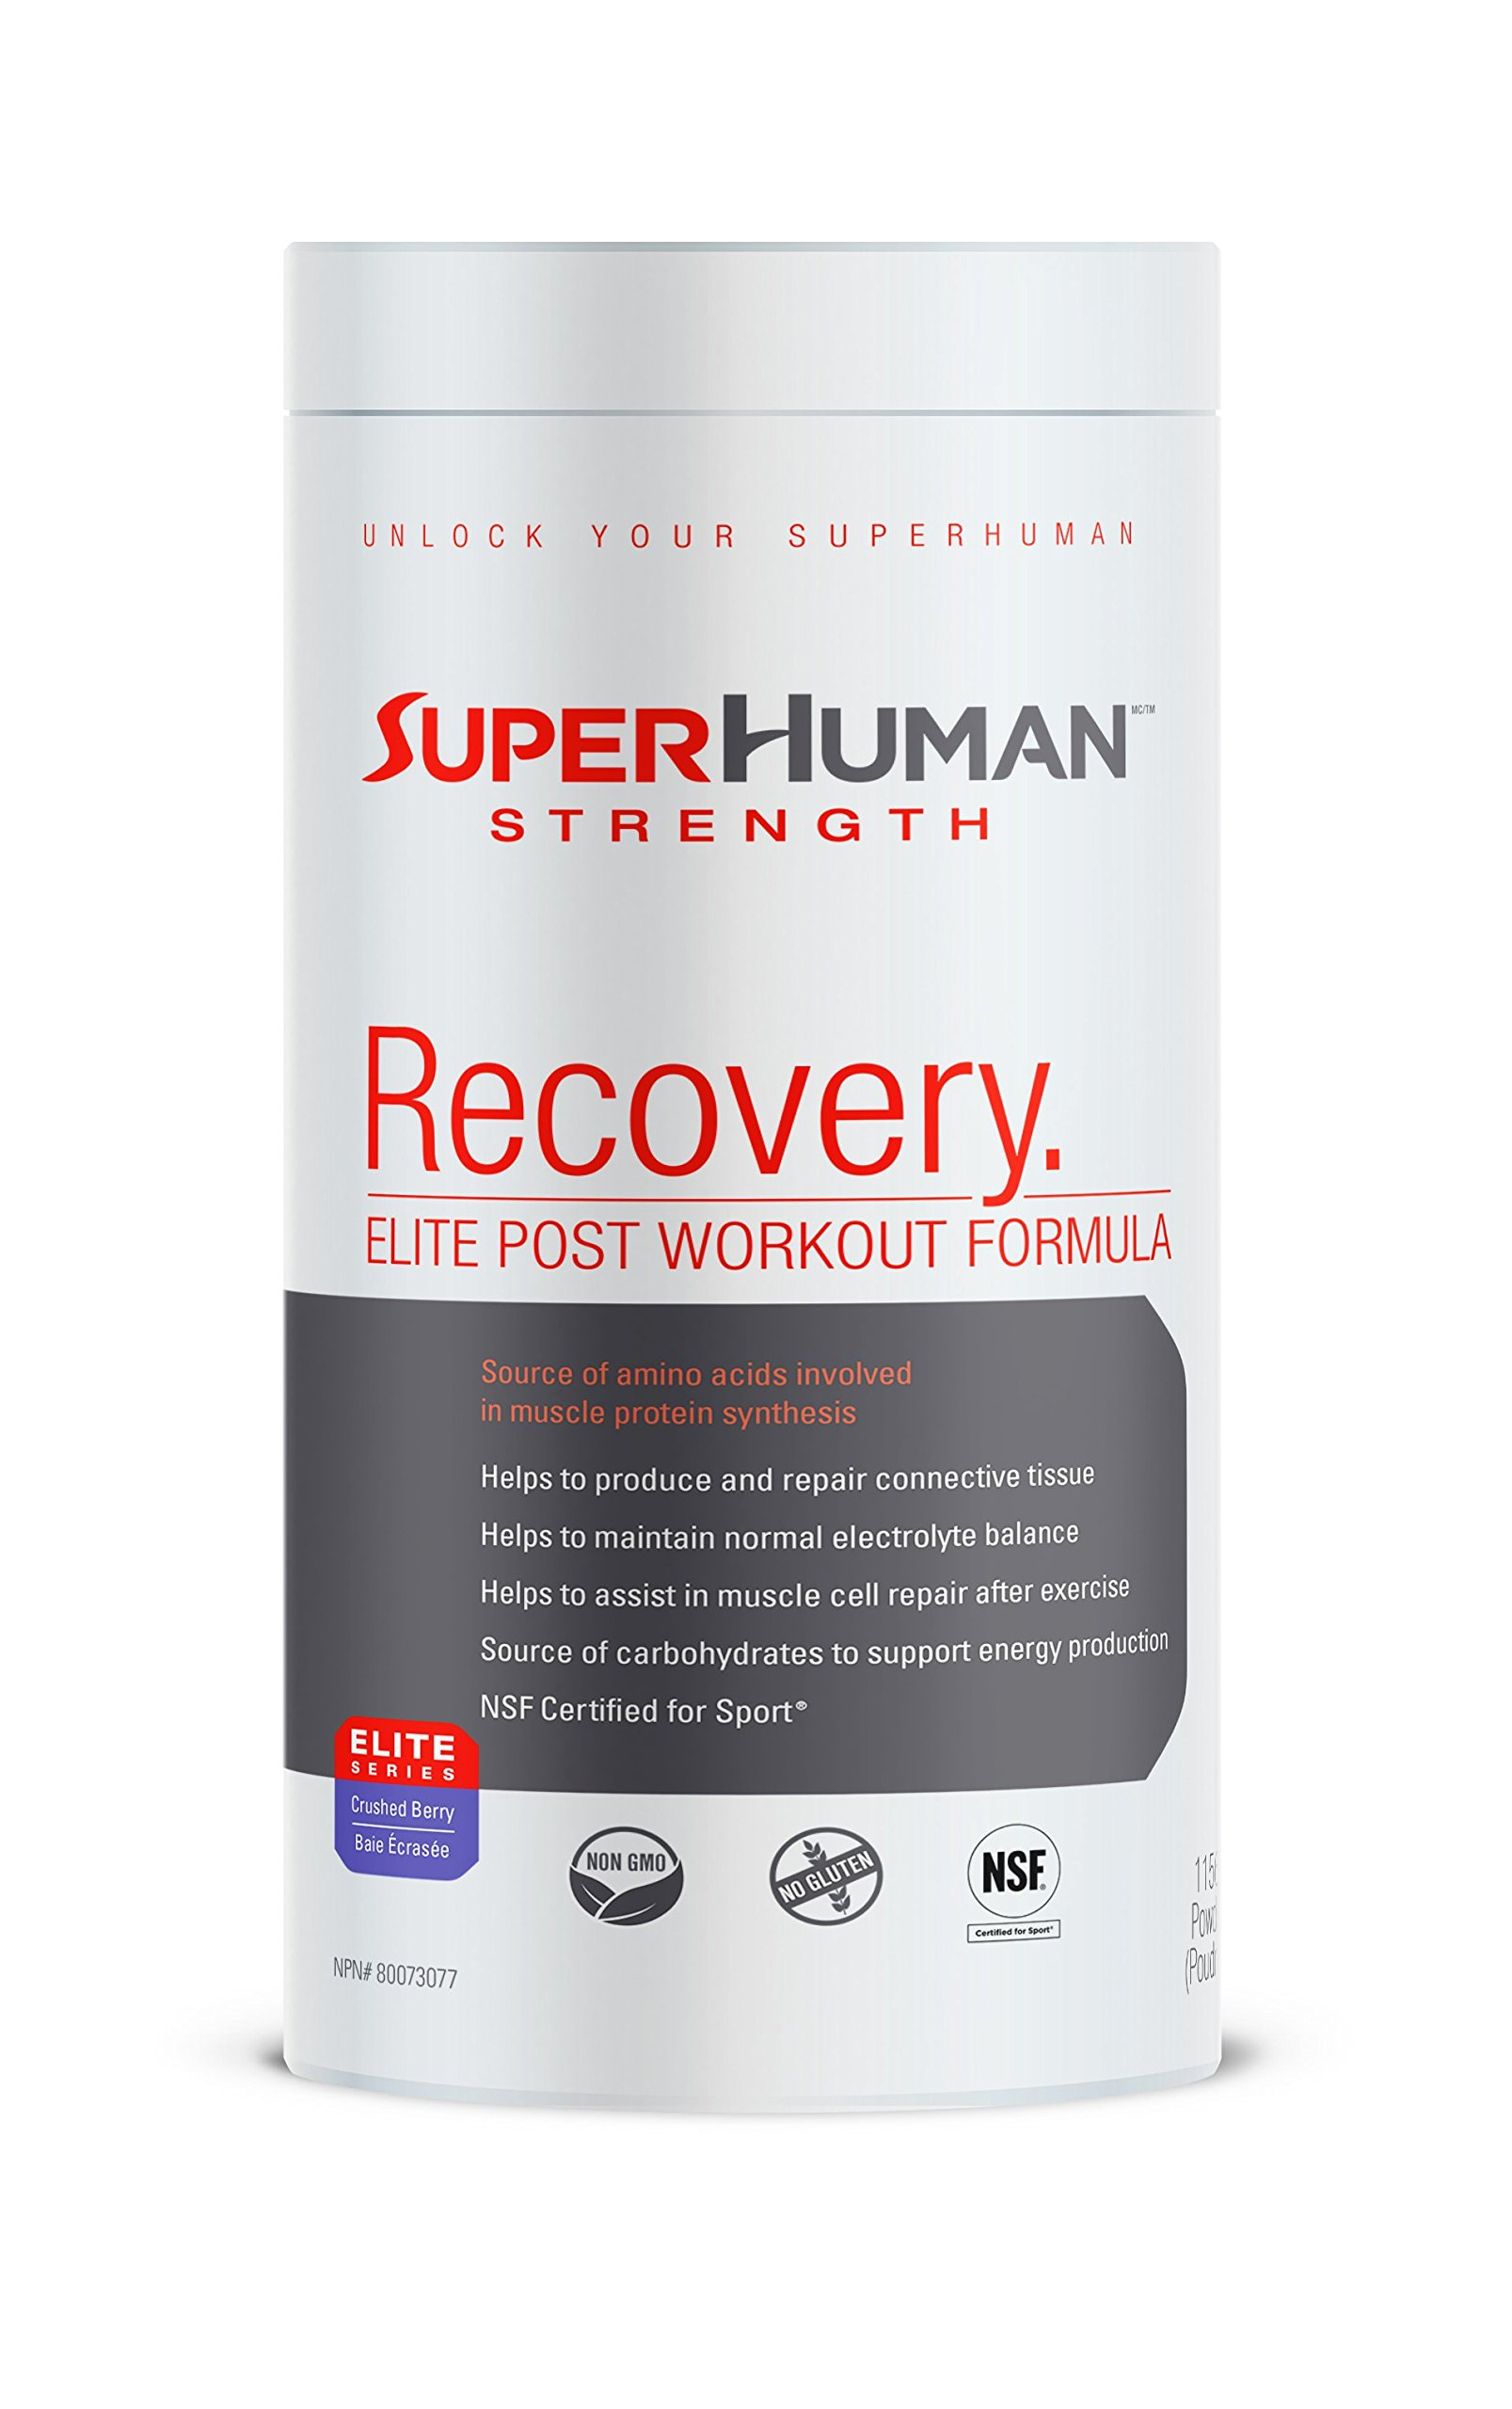 SuperHuman Strength Recovery Post Workout Powder - Gluten Free NSF Certified Berry Flavor Supplement, 2.55 lbs